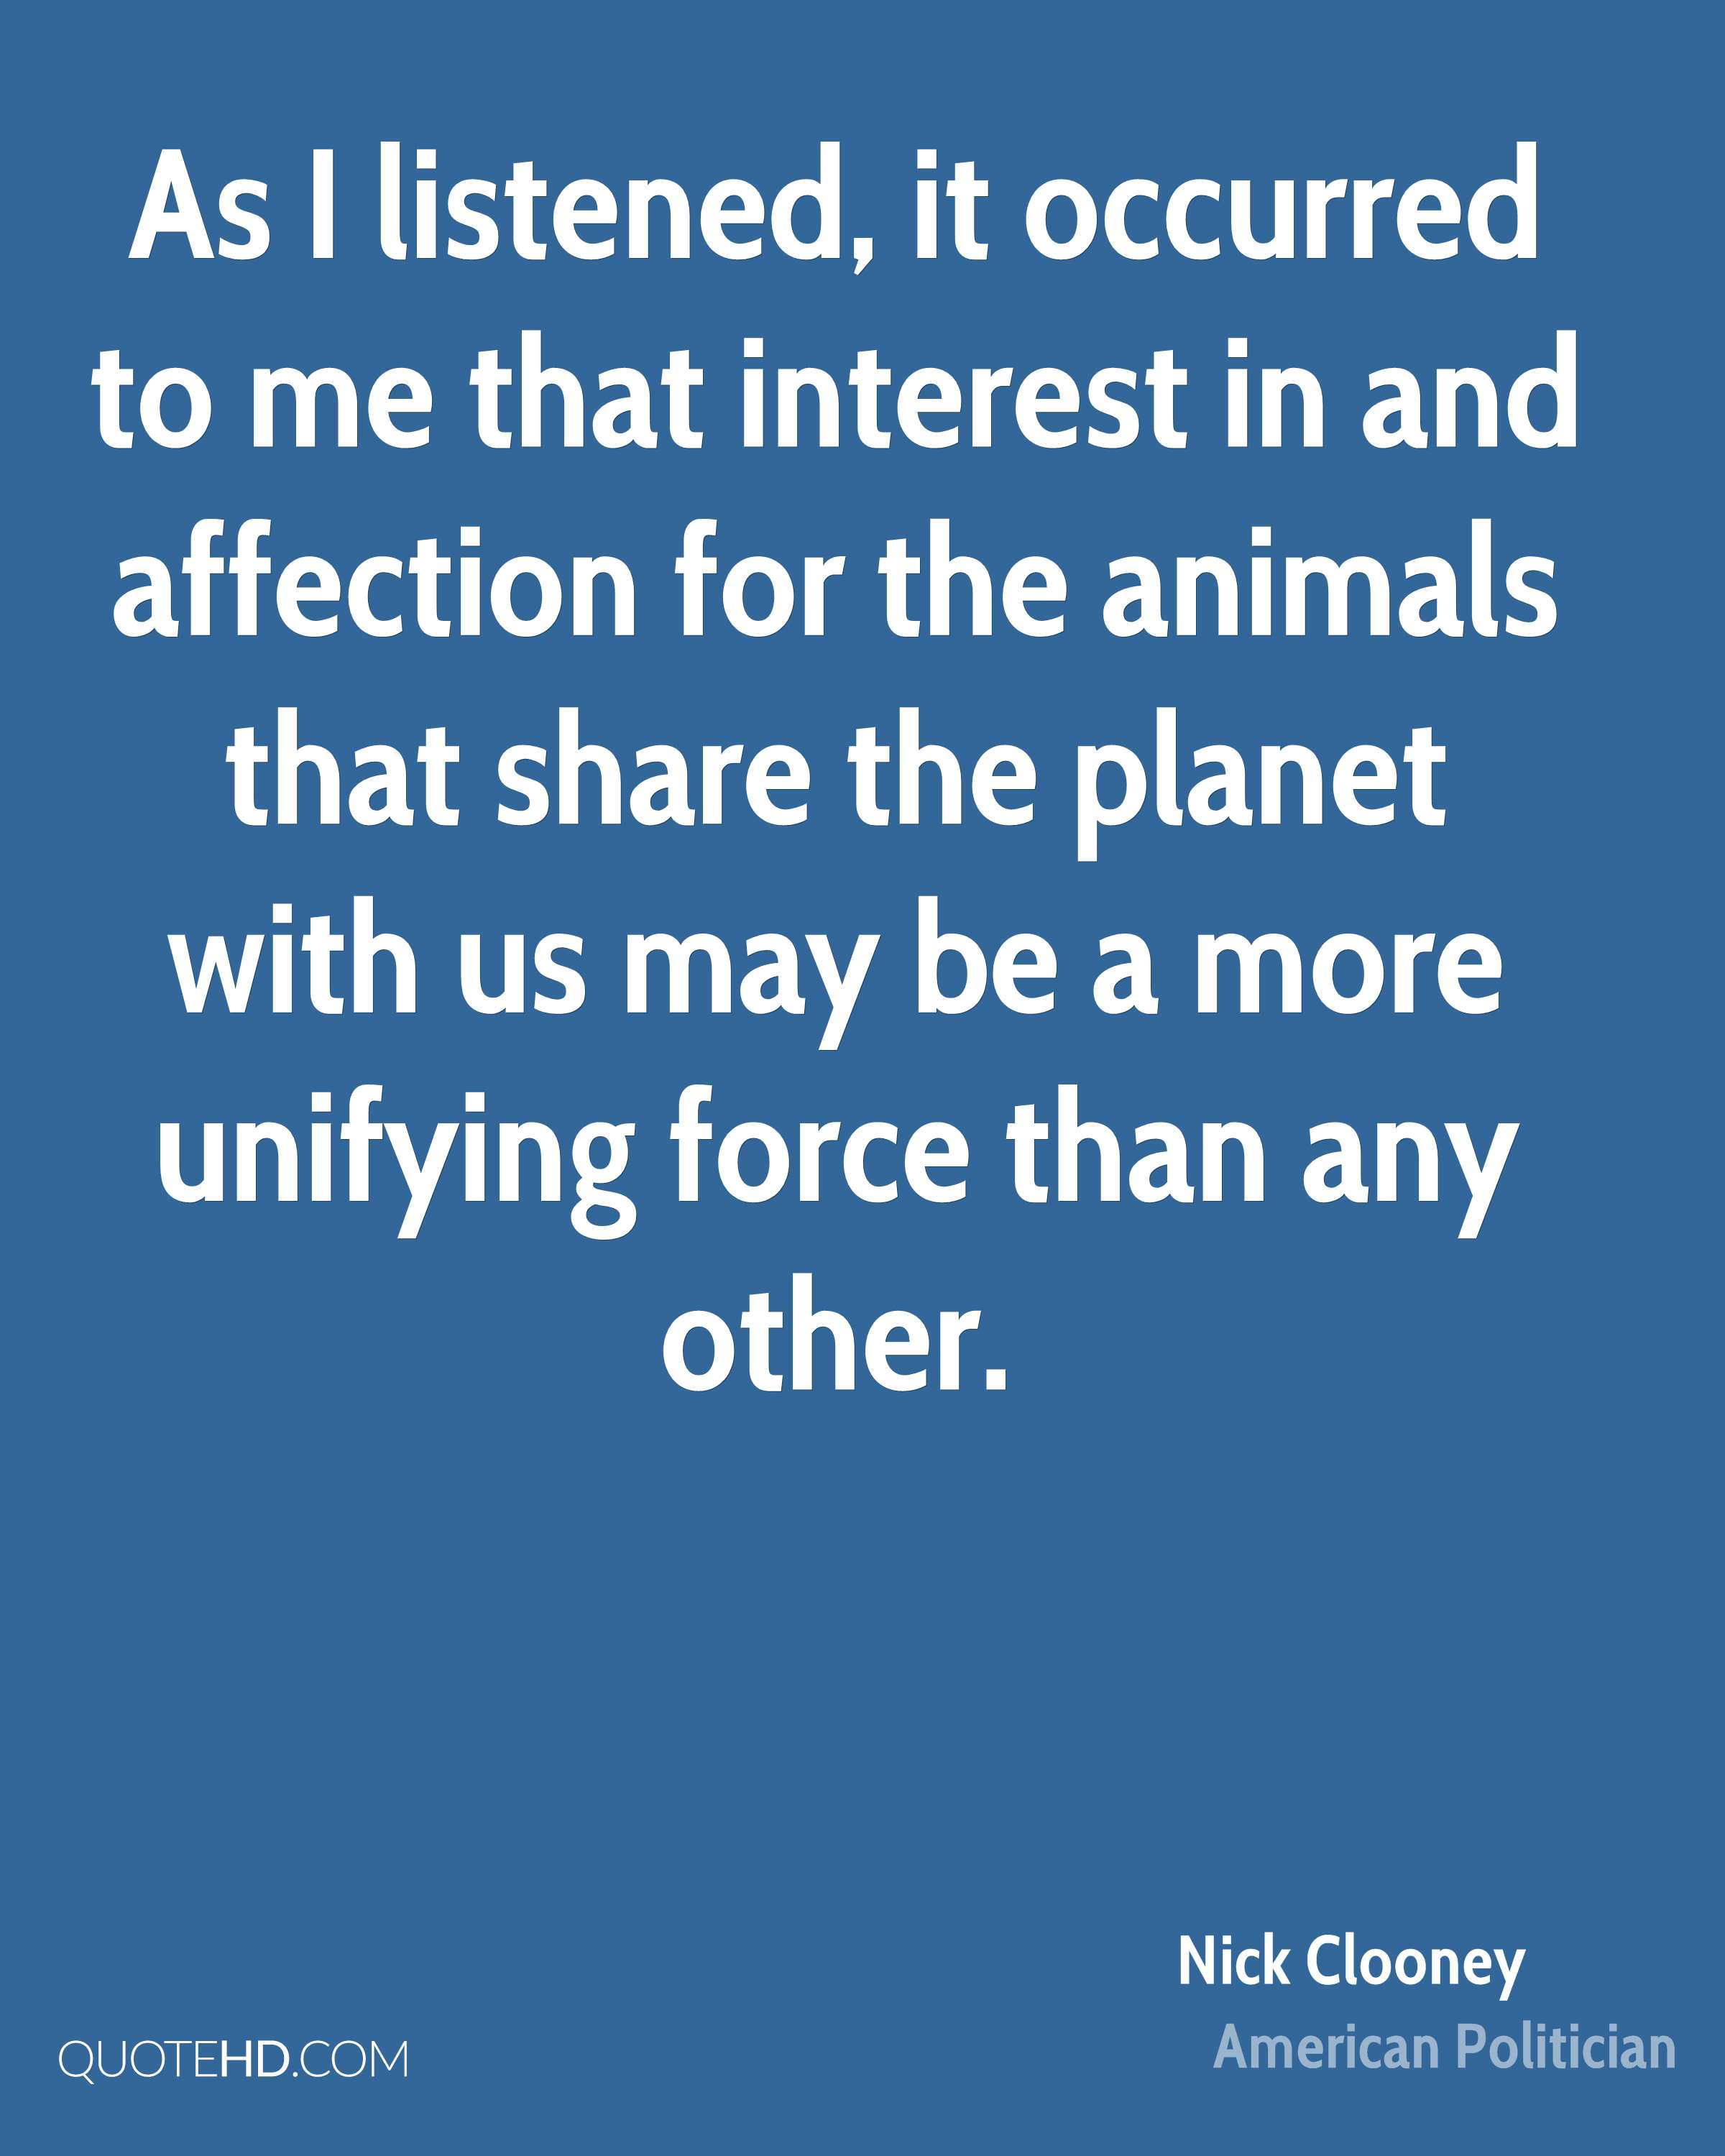 As I listened, it occurred to me that interest in and affection for the animals that share the planet with us may be a more unifying force than any other.